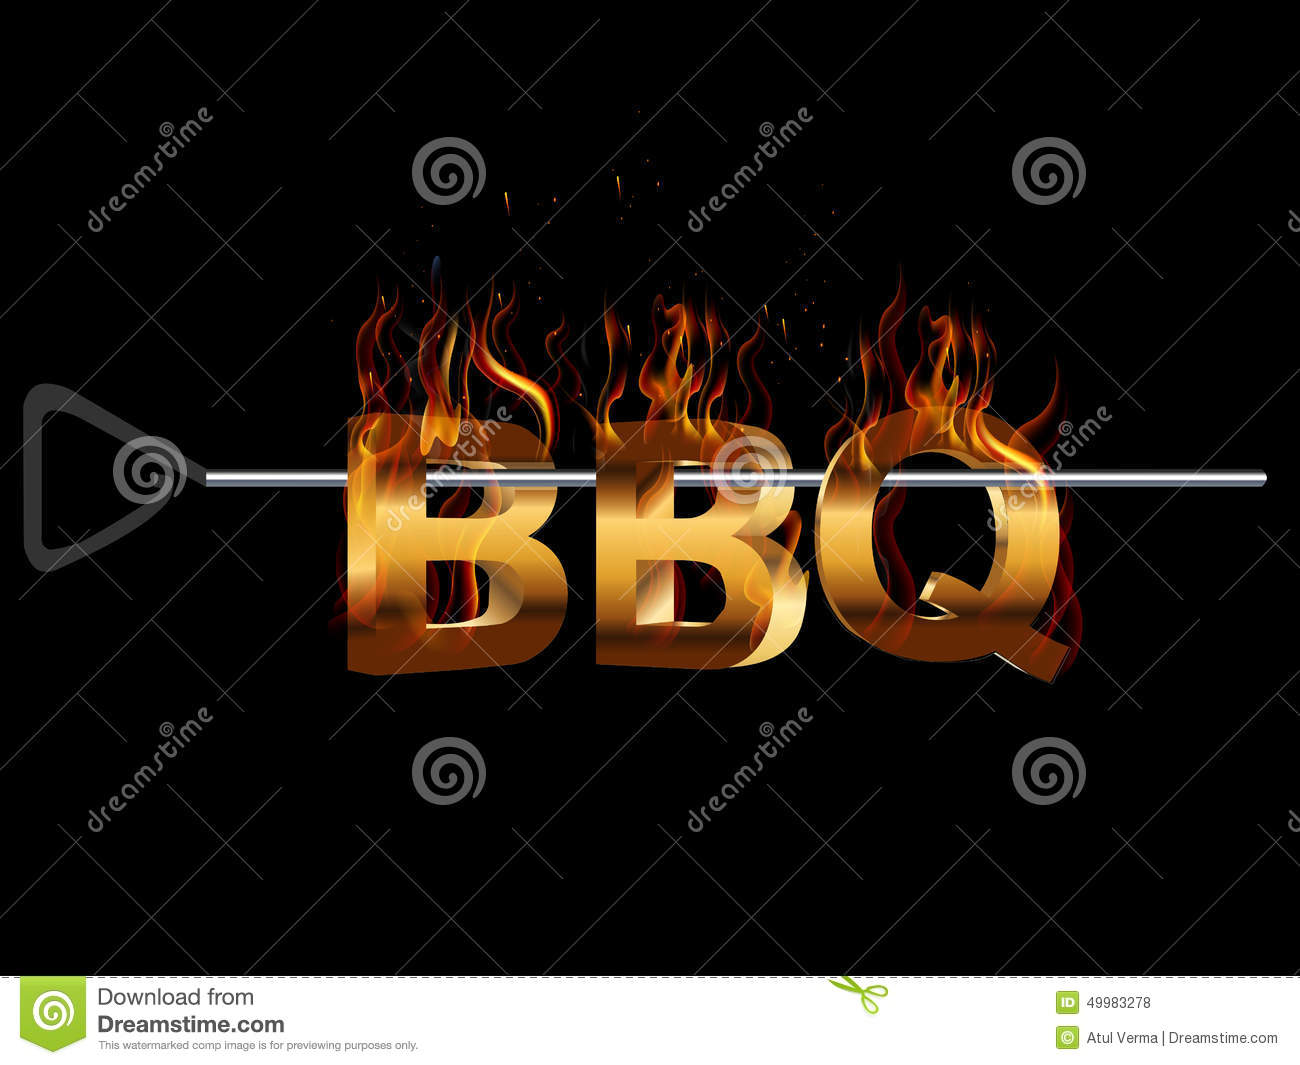 BBQ Barbecue Party invitation, fire flame smoking effect